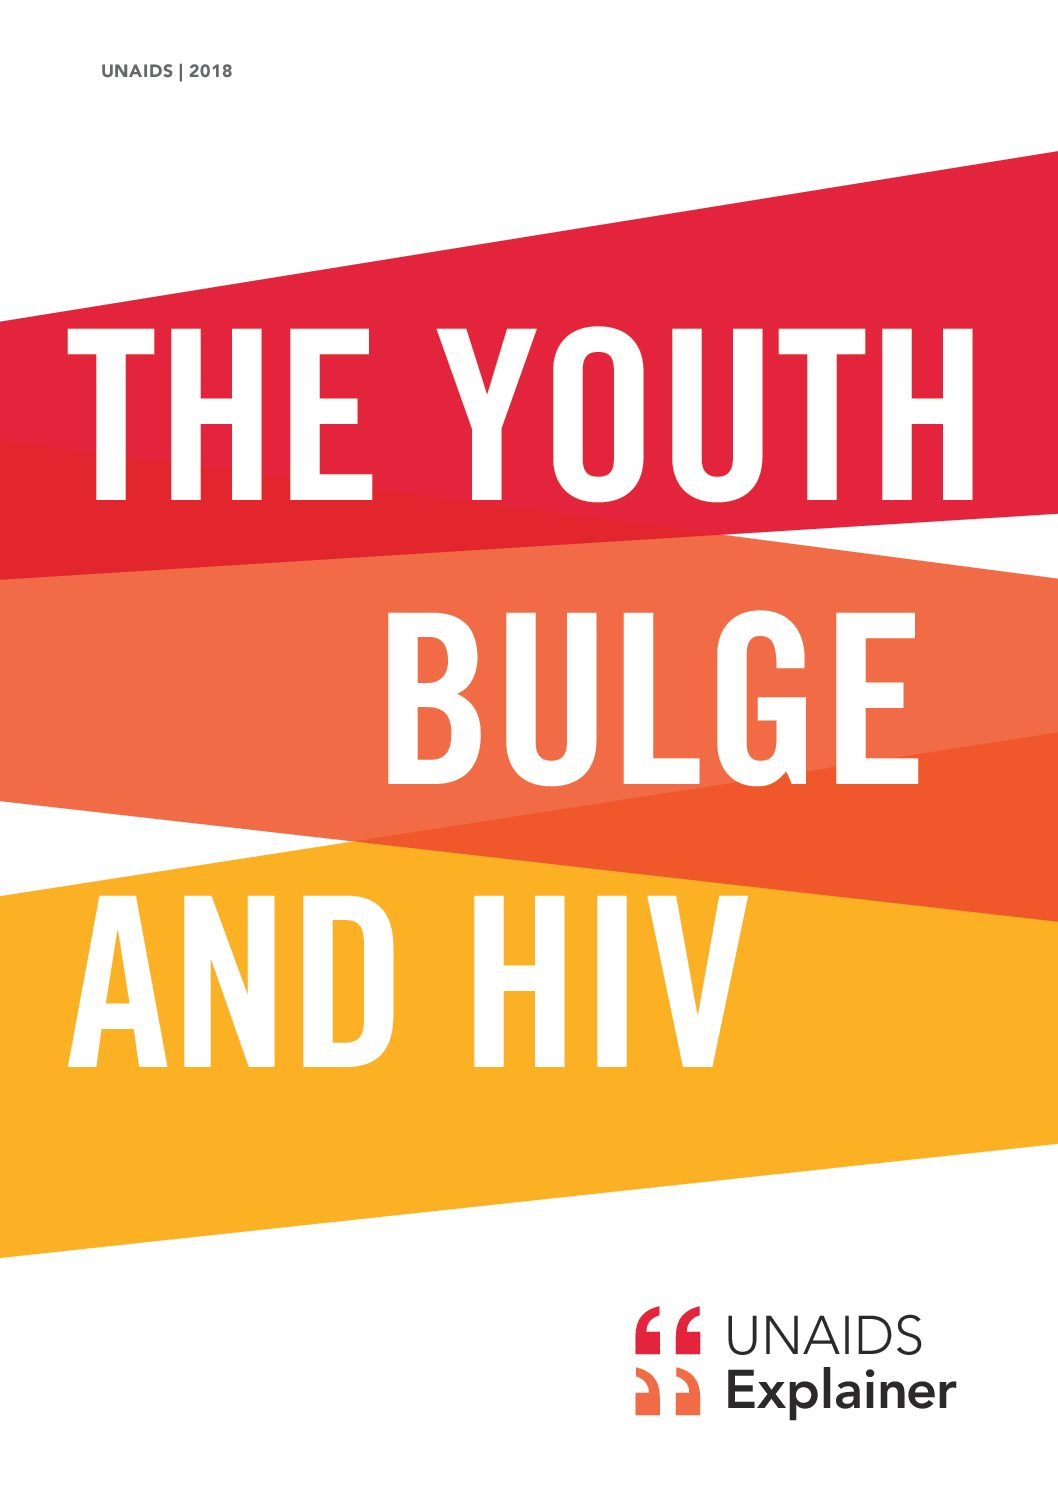 The youth bulge and HIV